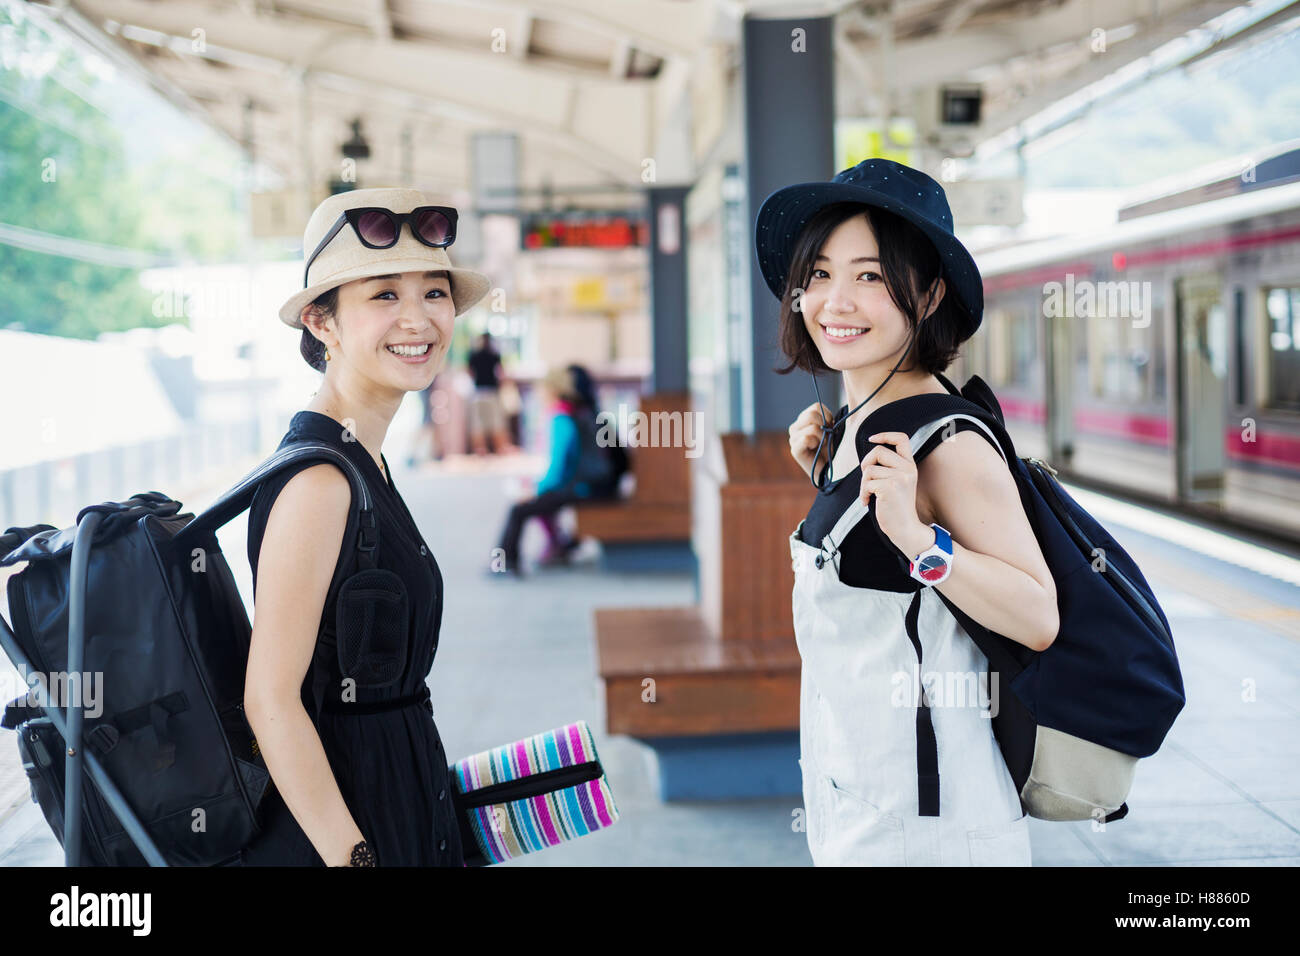 Two young women standing on a platform at a railway station. - Stock Image